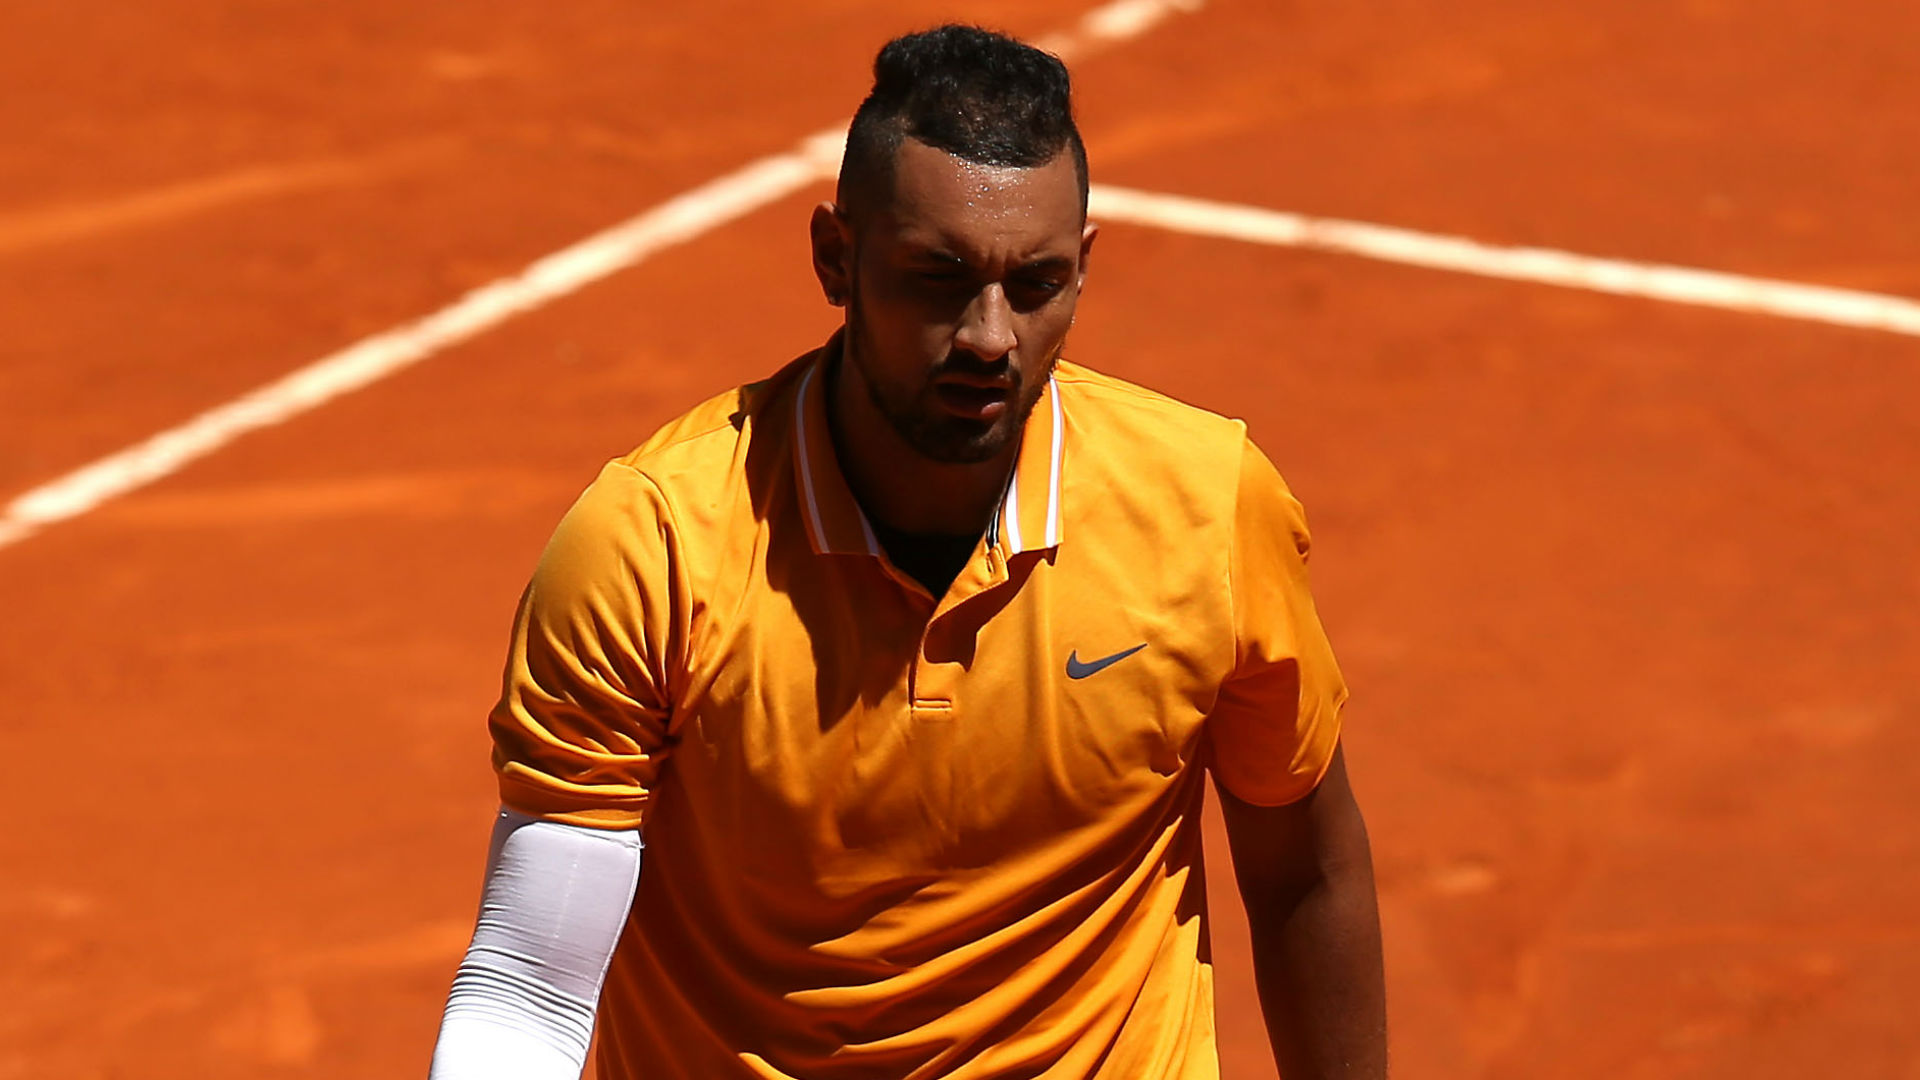 French Open 2019: Nick Kyrgios withdraws with illness after saying event 'sucks'